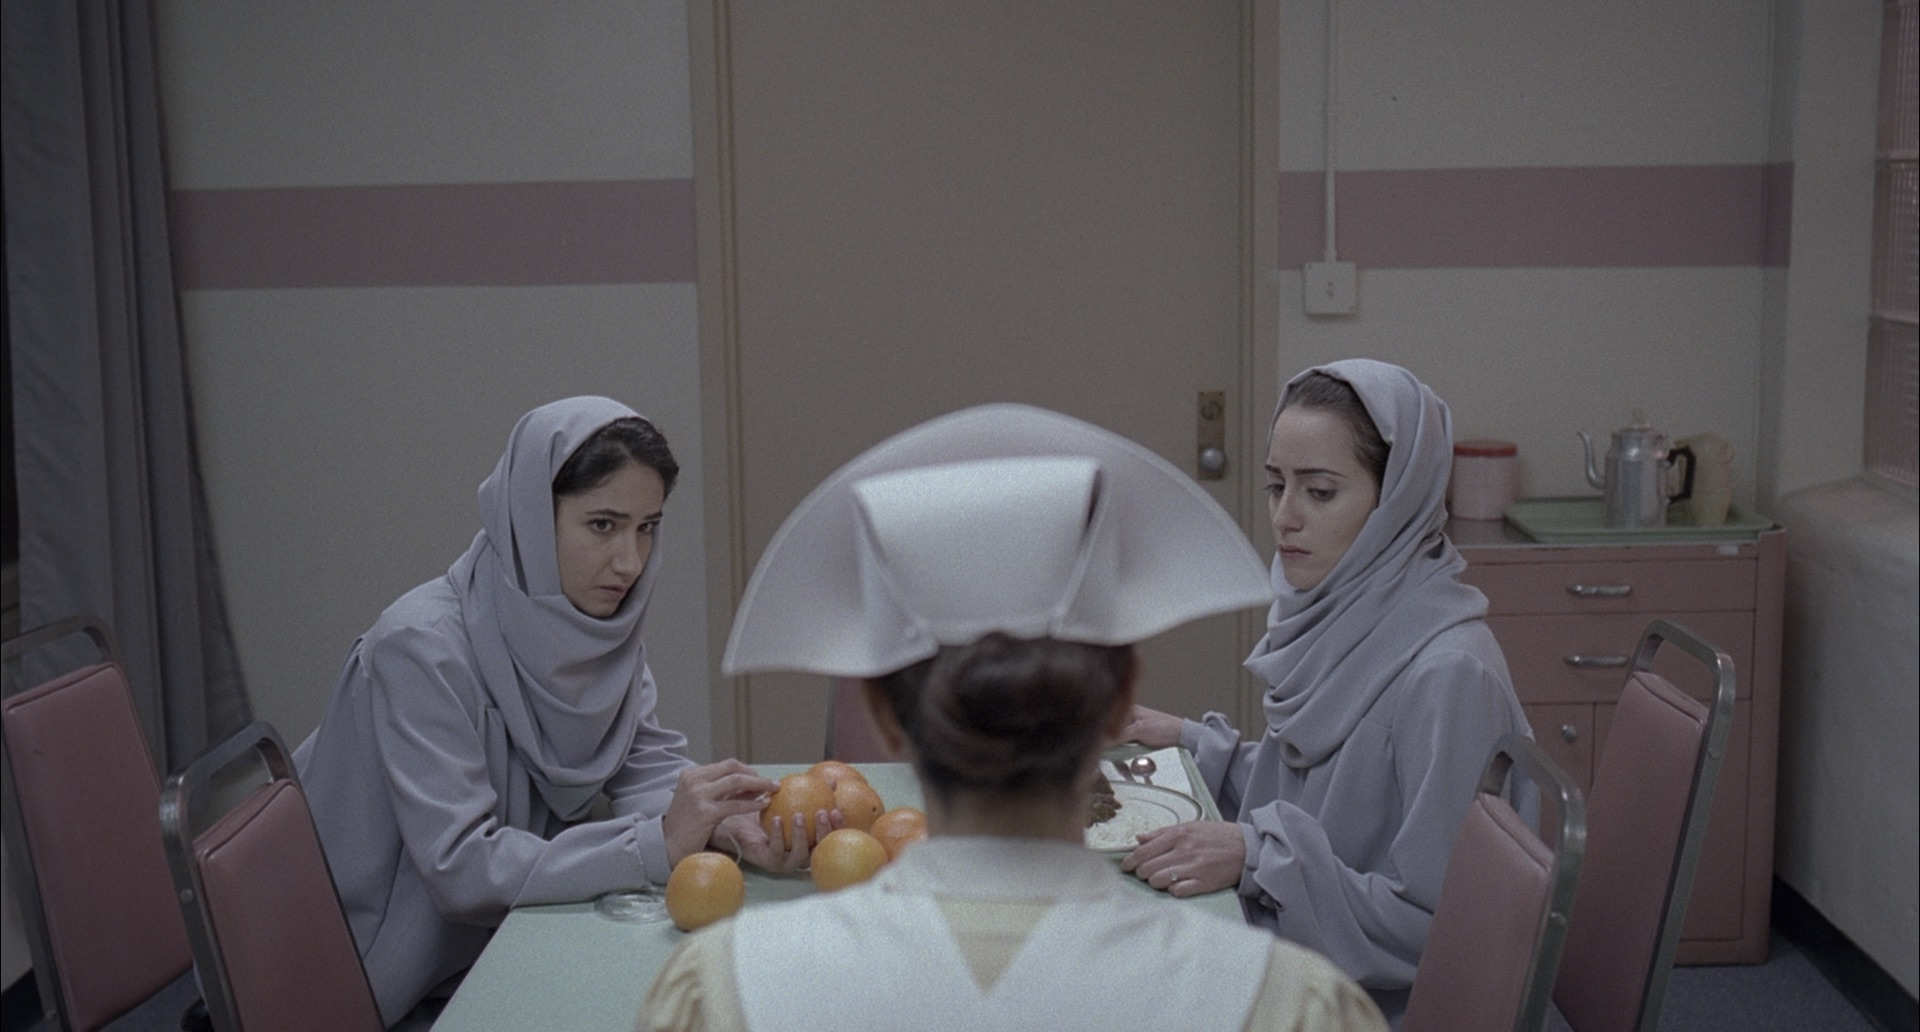 The Last Shift    Directors: Roja Gashtili, Julia Lerman // USA    A young nurse grows obsessed with a locked door in the ward where she works as a revolution unfolds beyond the hospital walls in 1979 Iran.